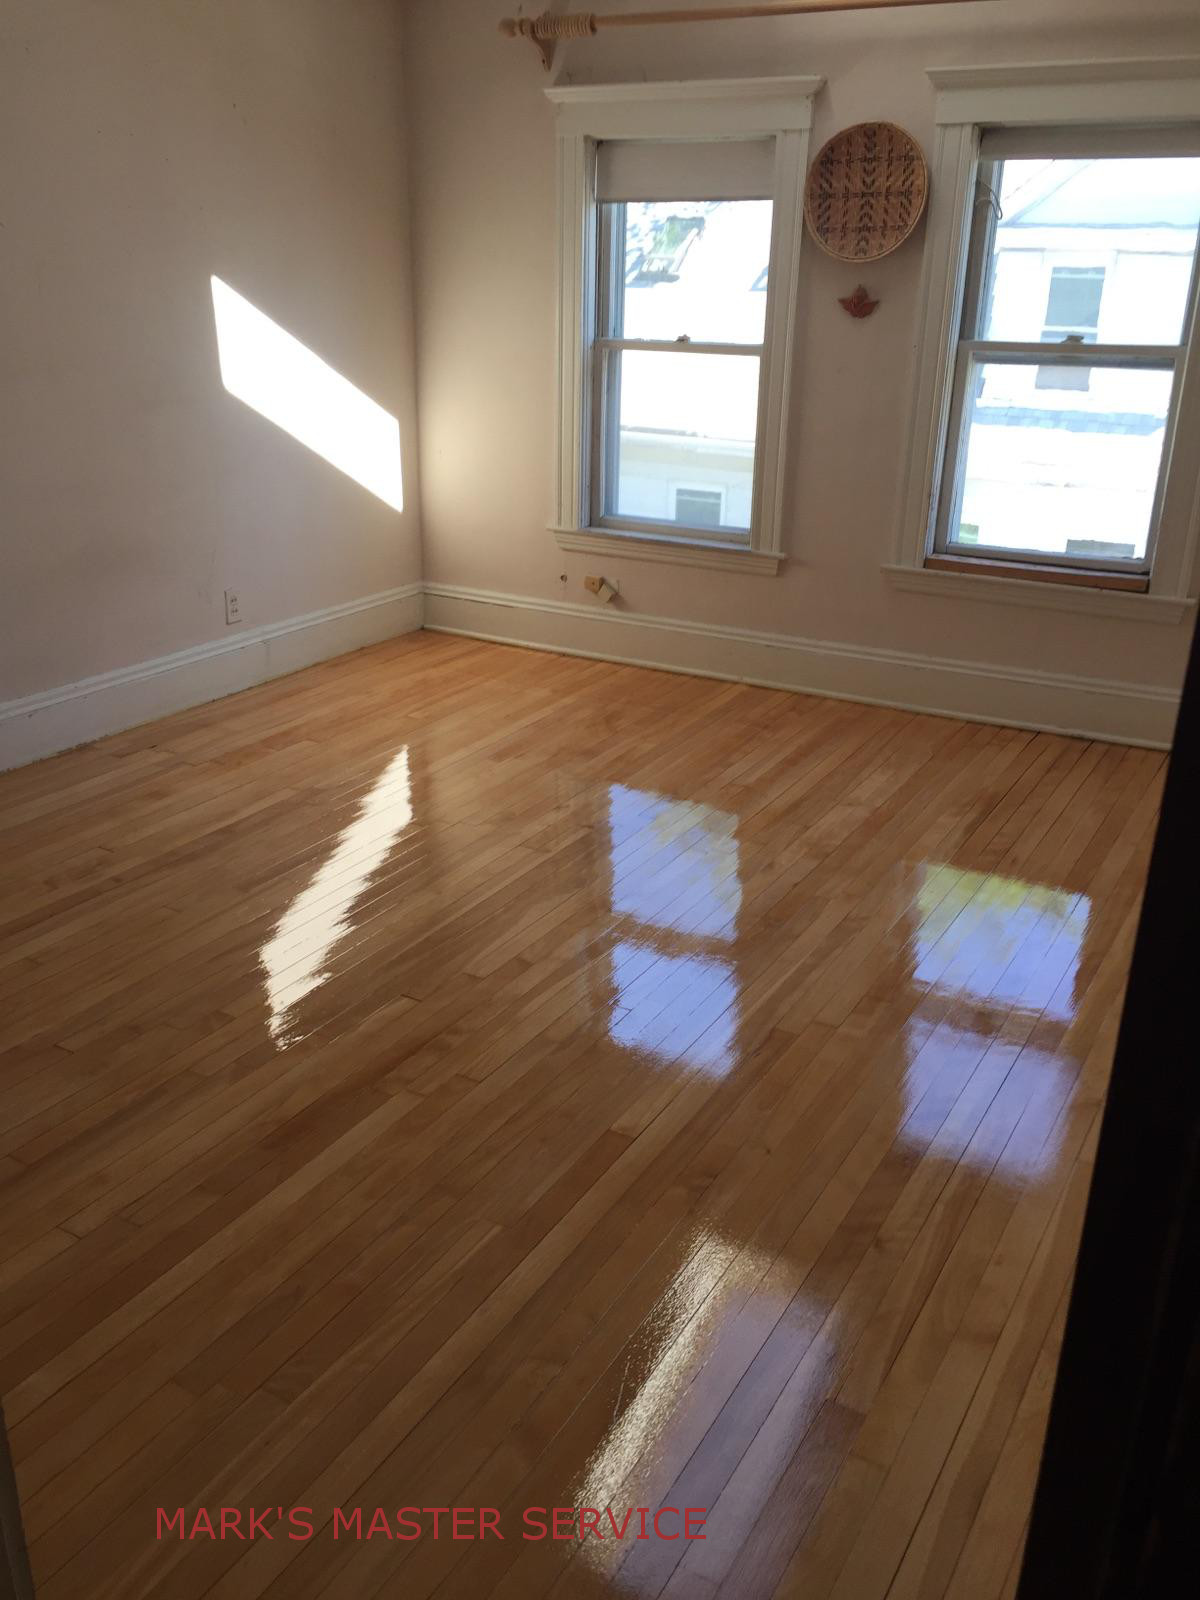 How to fix hardwood floors that are lifting - Before And After Pictures In Watertown Client Is Getting The House Ready For Sale And They Must Have Beautiful Floors Read More